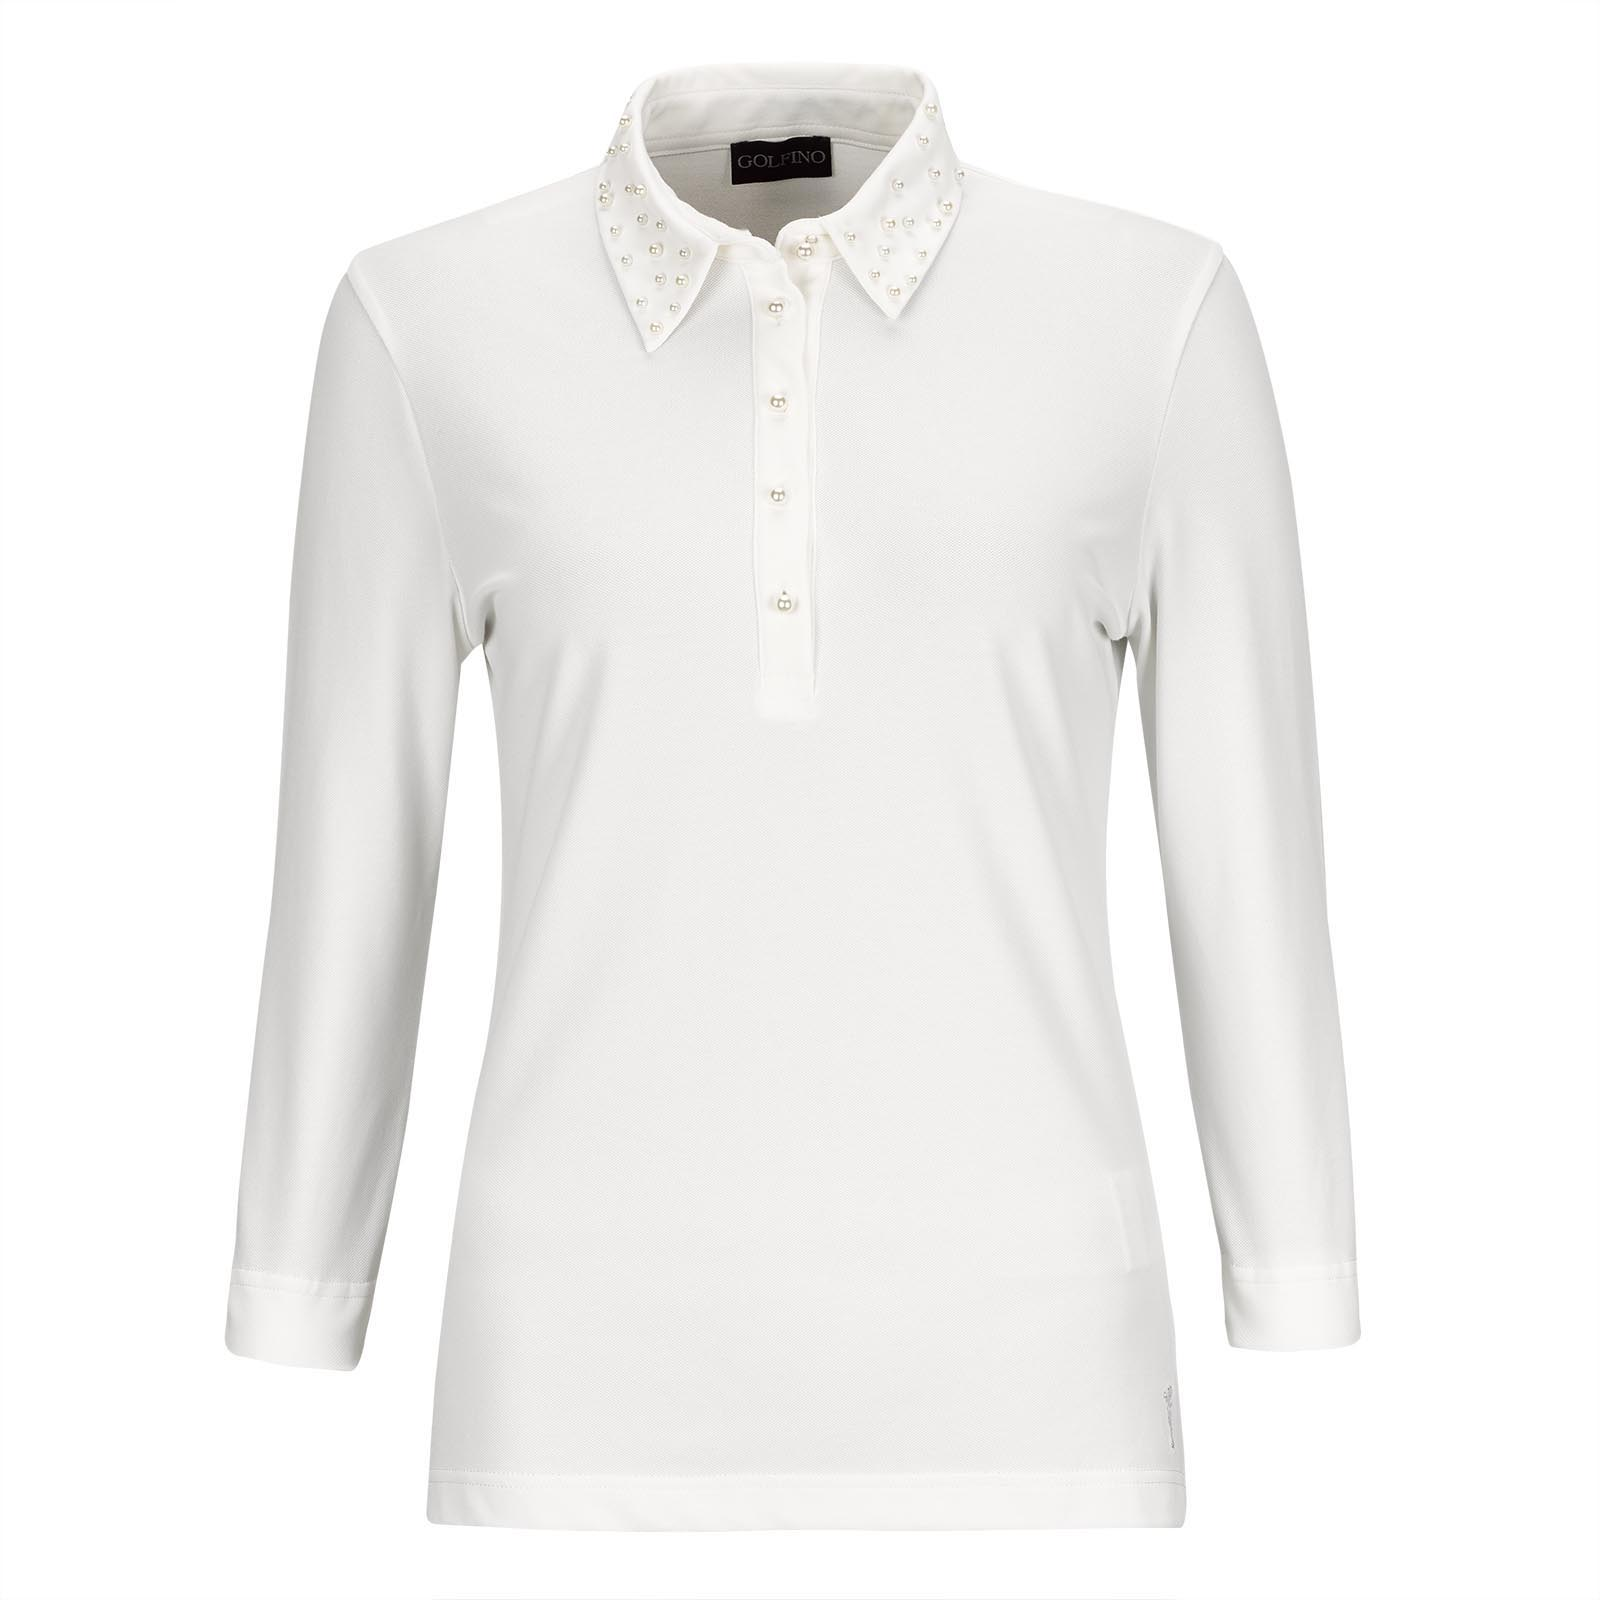 Cotton blend 3/4 sleeve Ladies' golf polo with Sun Protection and pearl trim